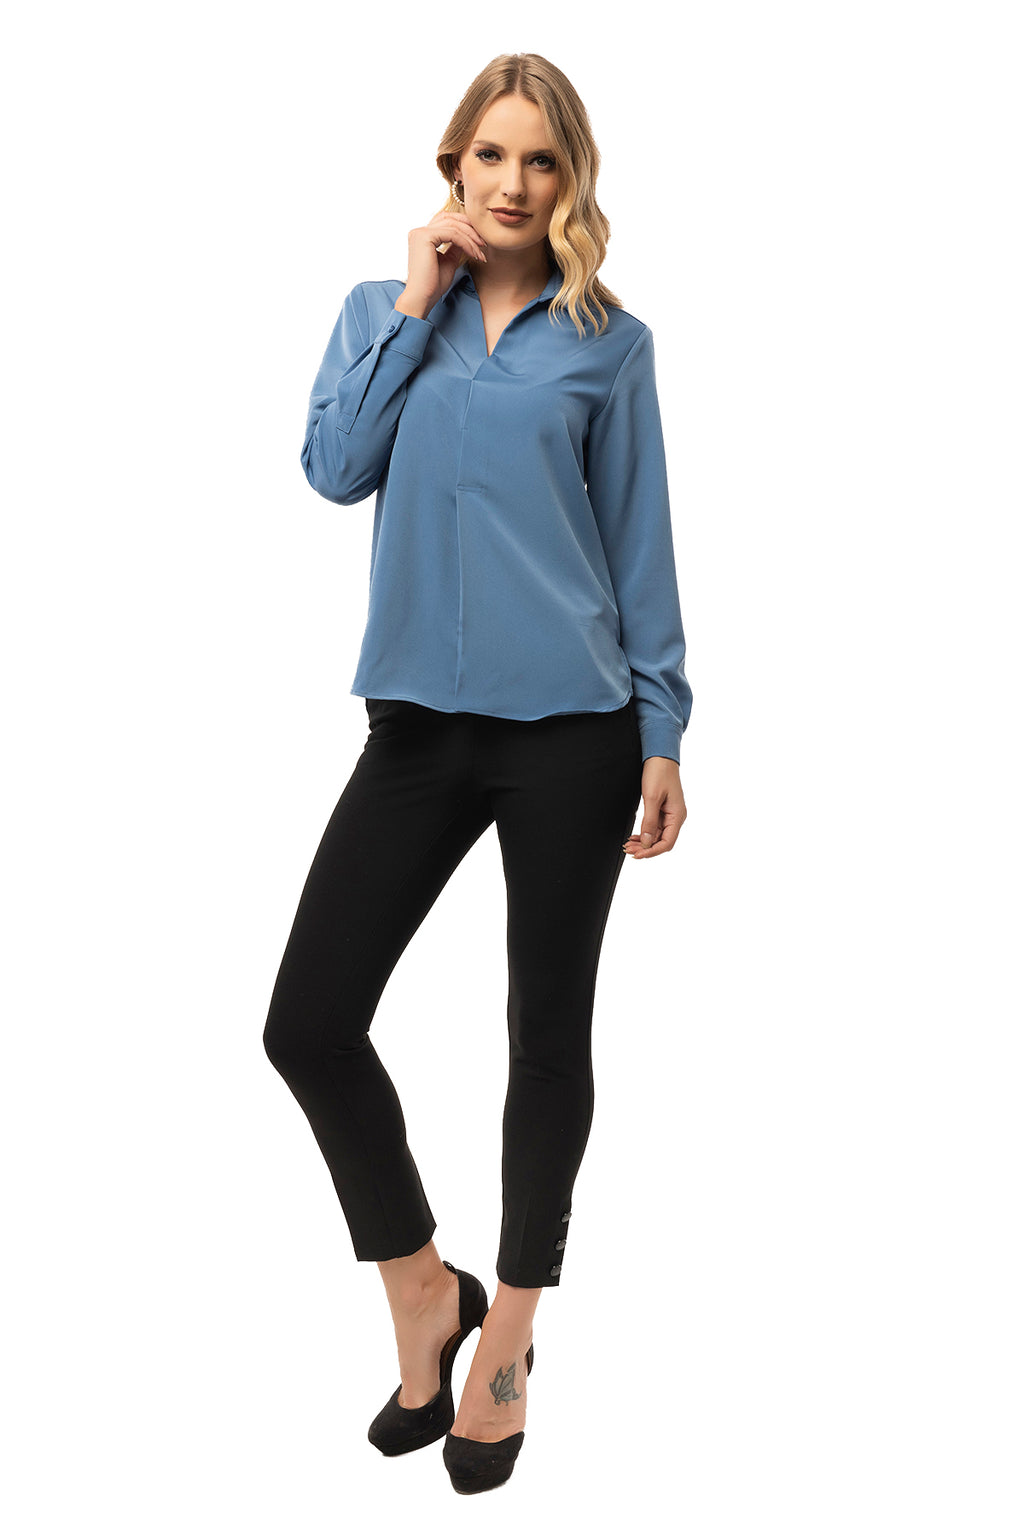 Center Pleat Blue Blouse - Long Sleeve